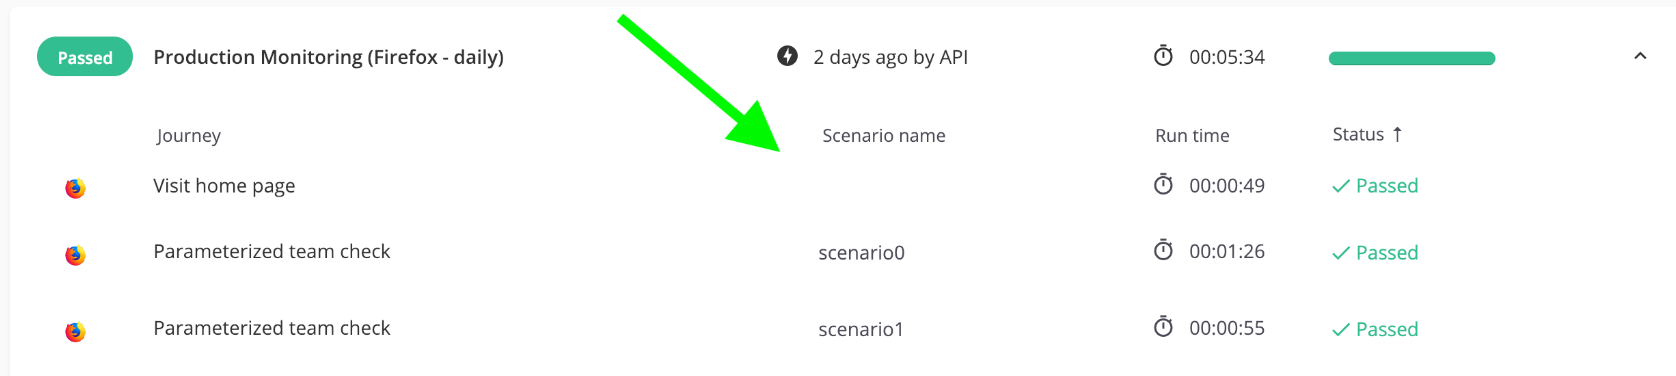 Assigning scenario names to your DataTables